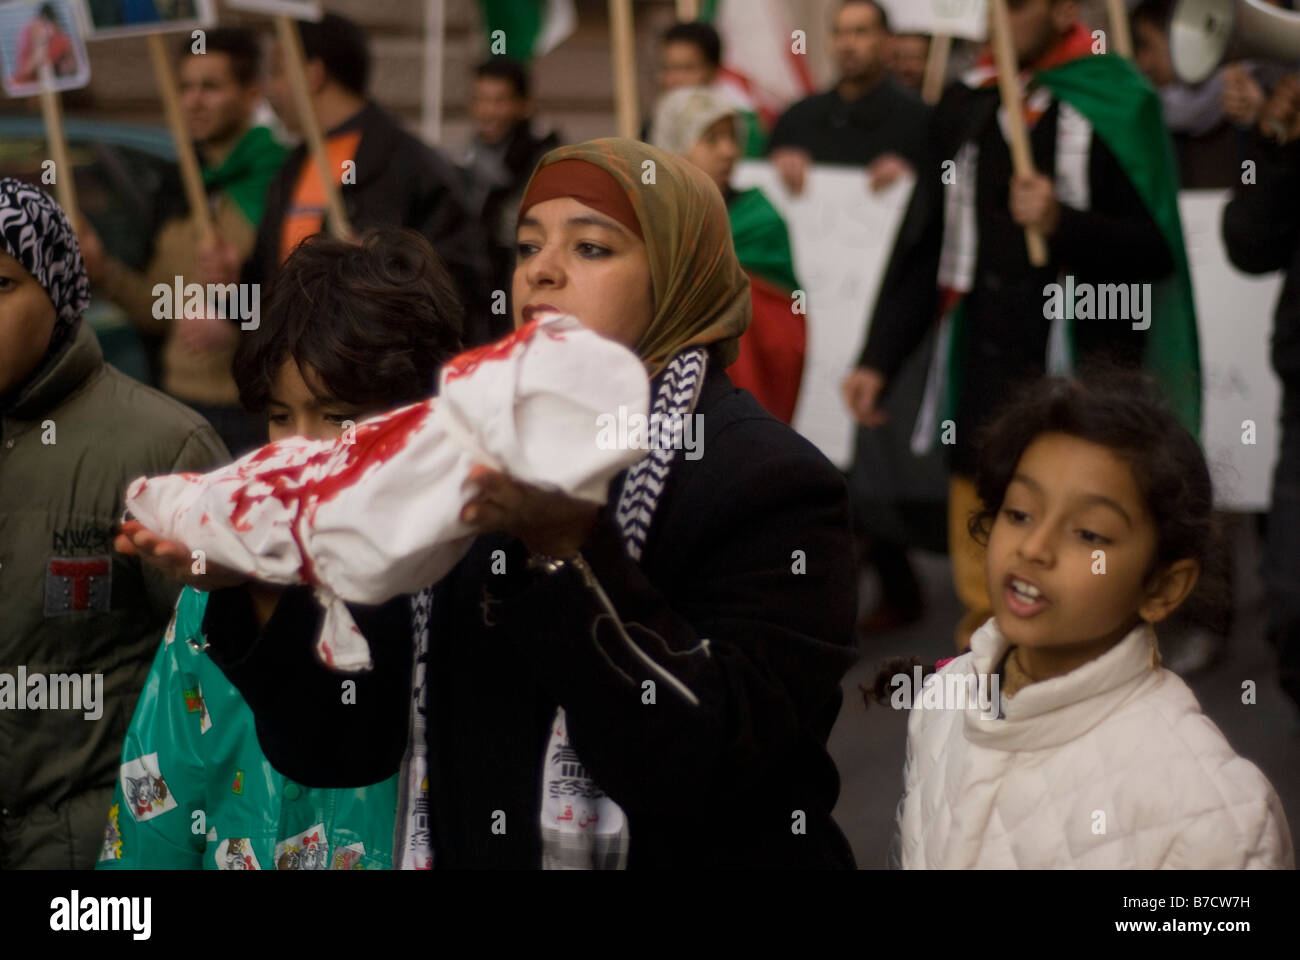 Demonstration against Israel massacre of palestinian people in Gaza, Rome, Italy, 17-01-2009 - Stock Image